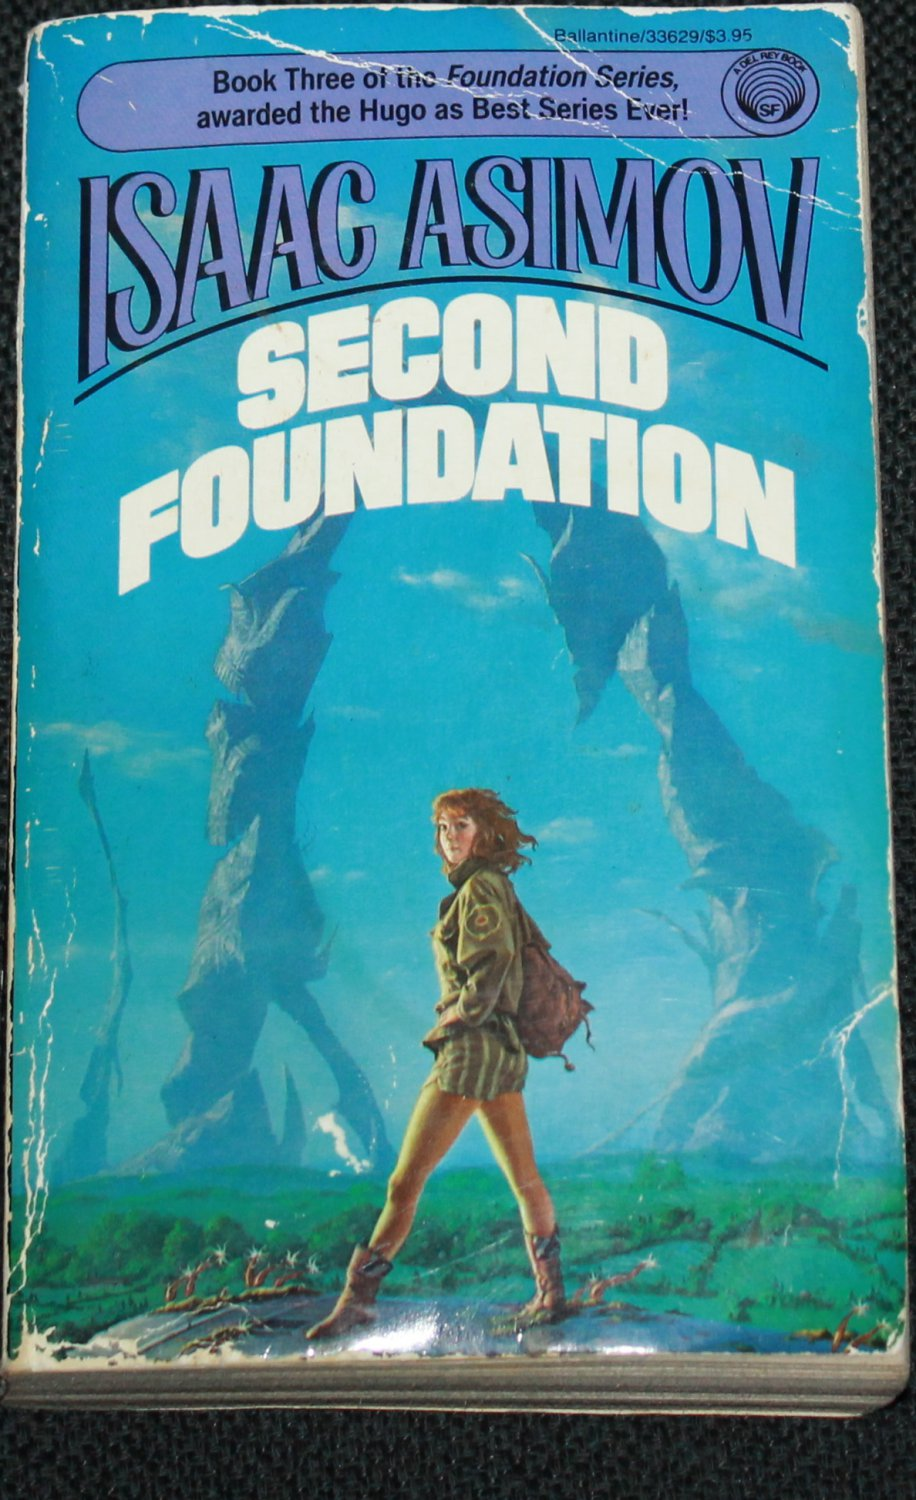 Second Foundation science fiction paperback book - galaxy sci-fi story